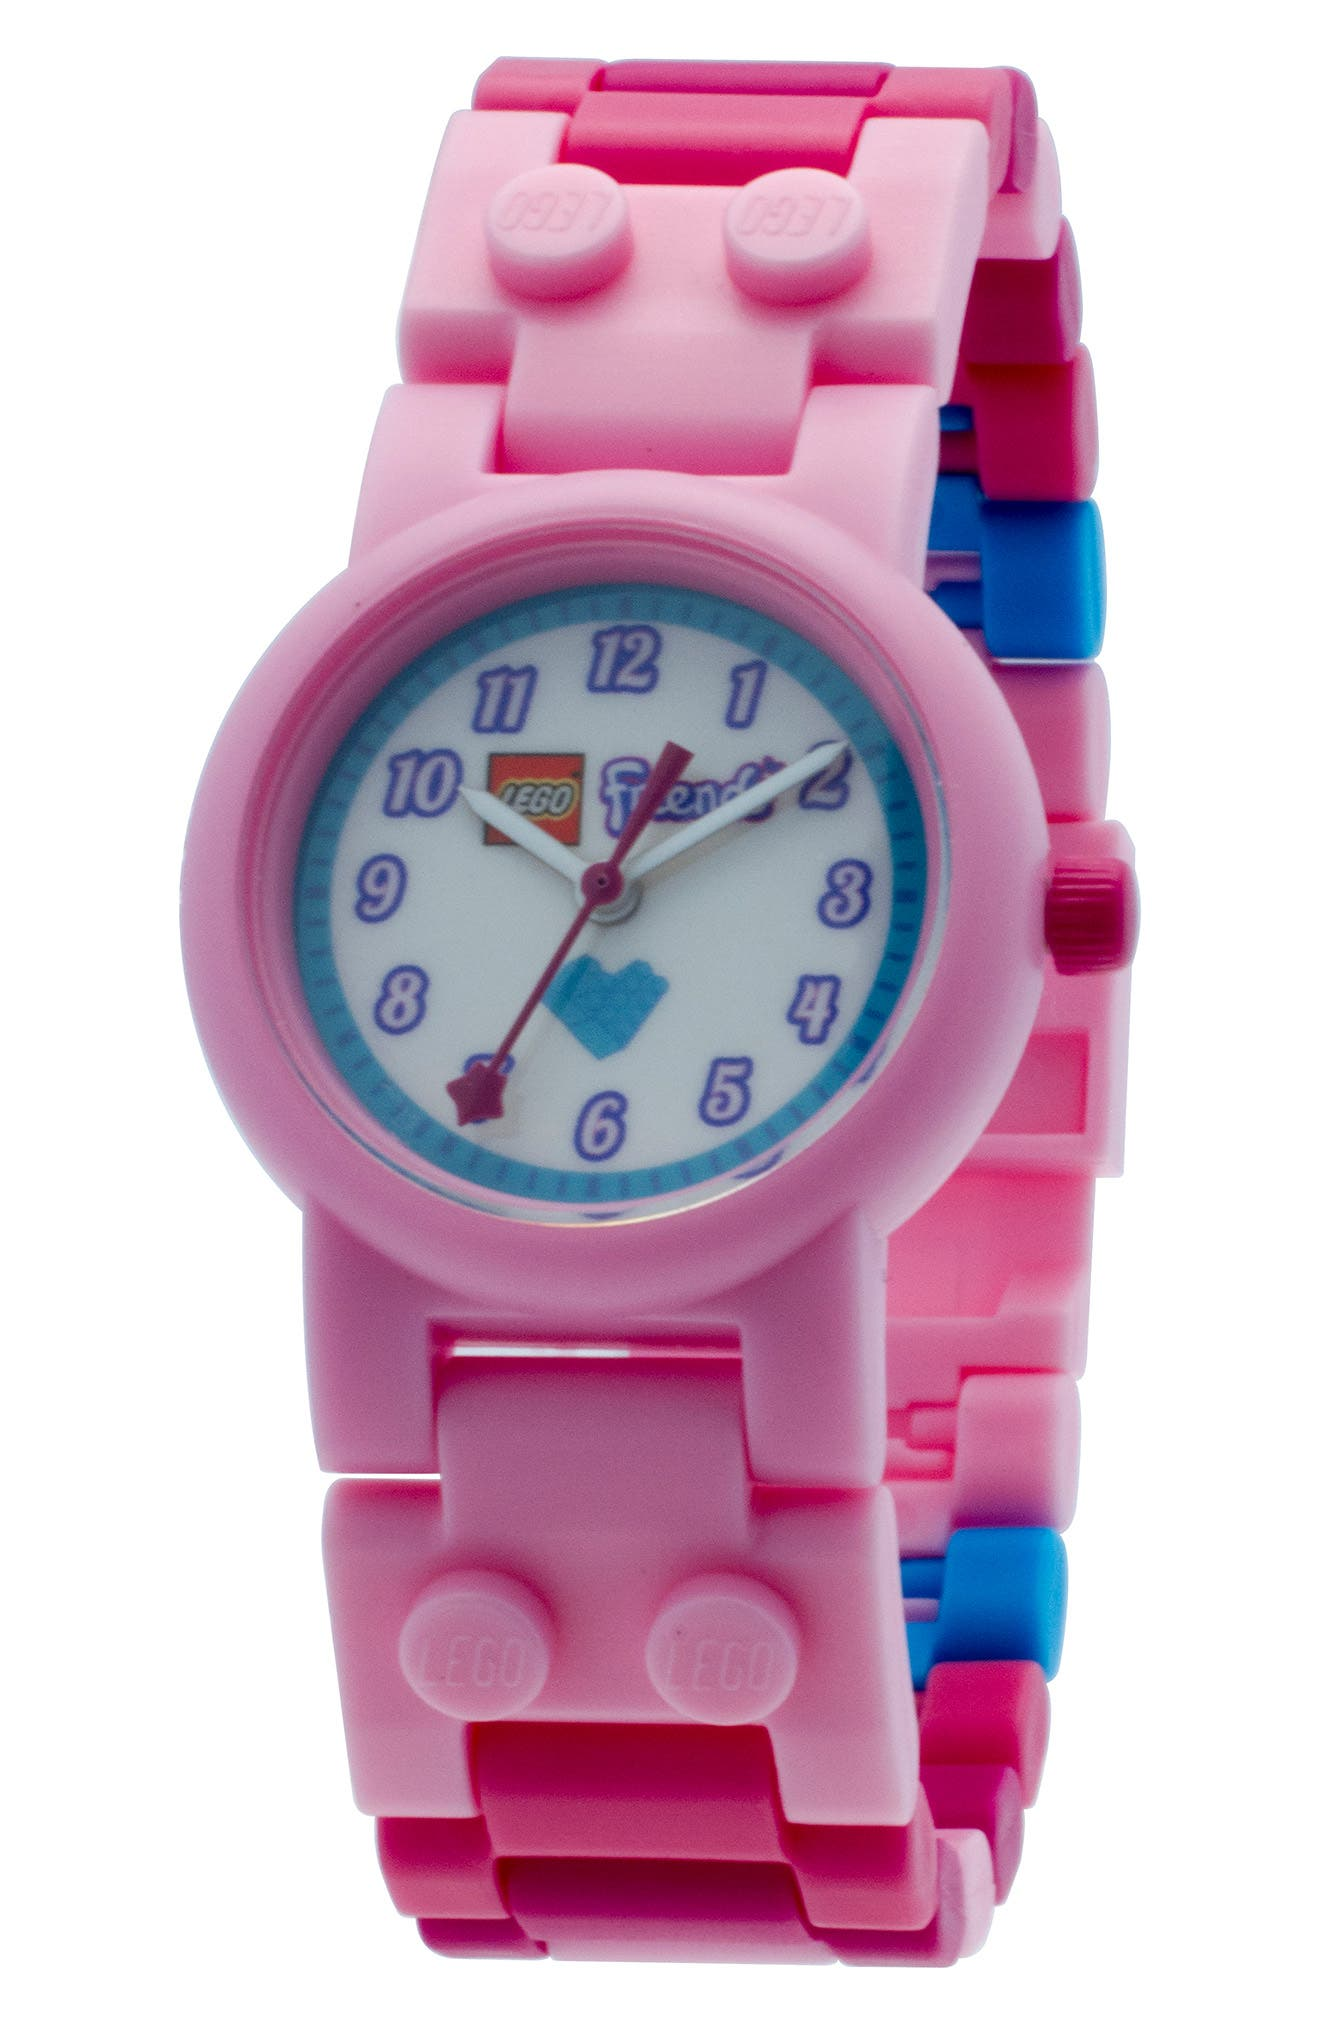 29-Piece LEGO Friends Stephanie Buildable Water-Resistant Watch & Figurine Set,                             Alternate thumbnail 2, color,                             Pink